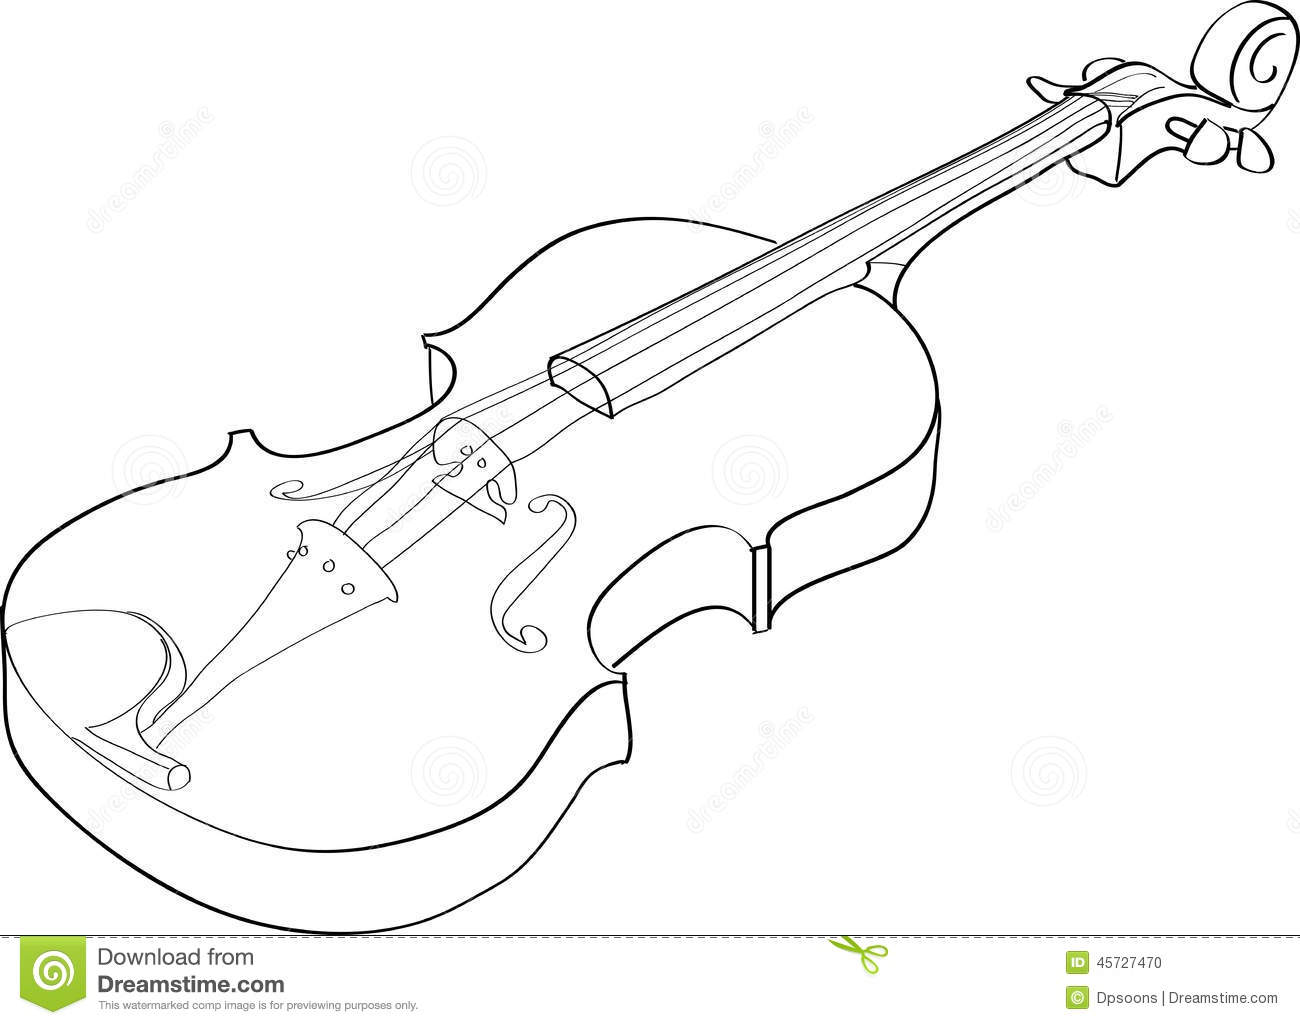 Line Drawing Violin : Violin stock vector illustration of outline picture